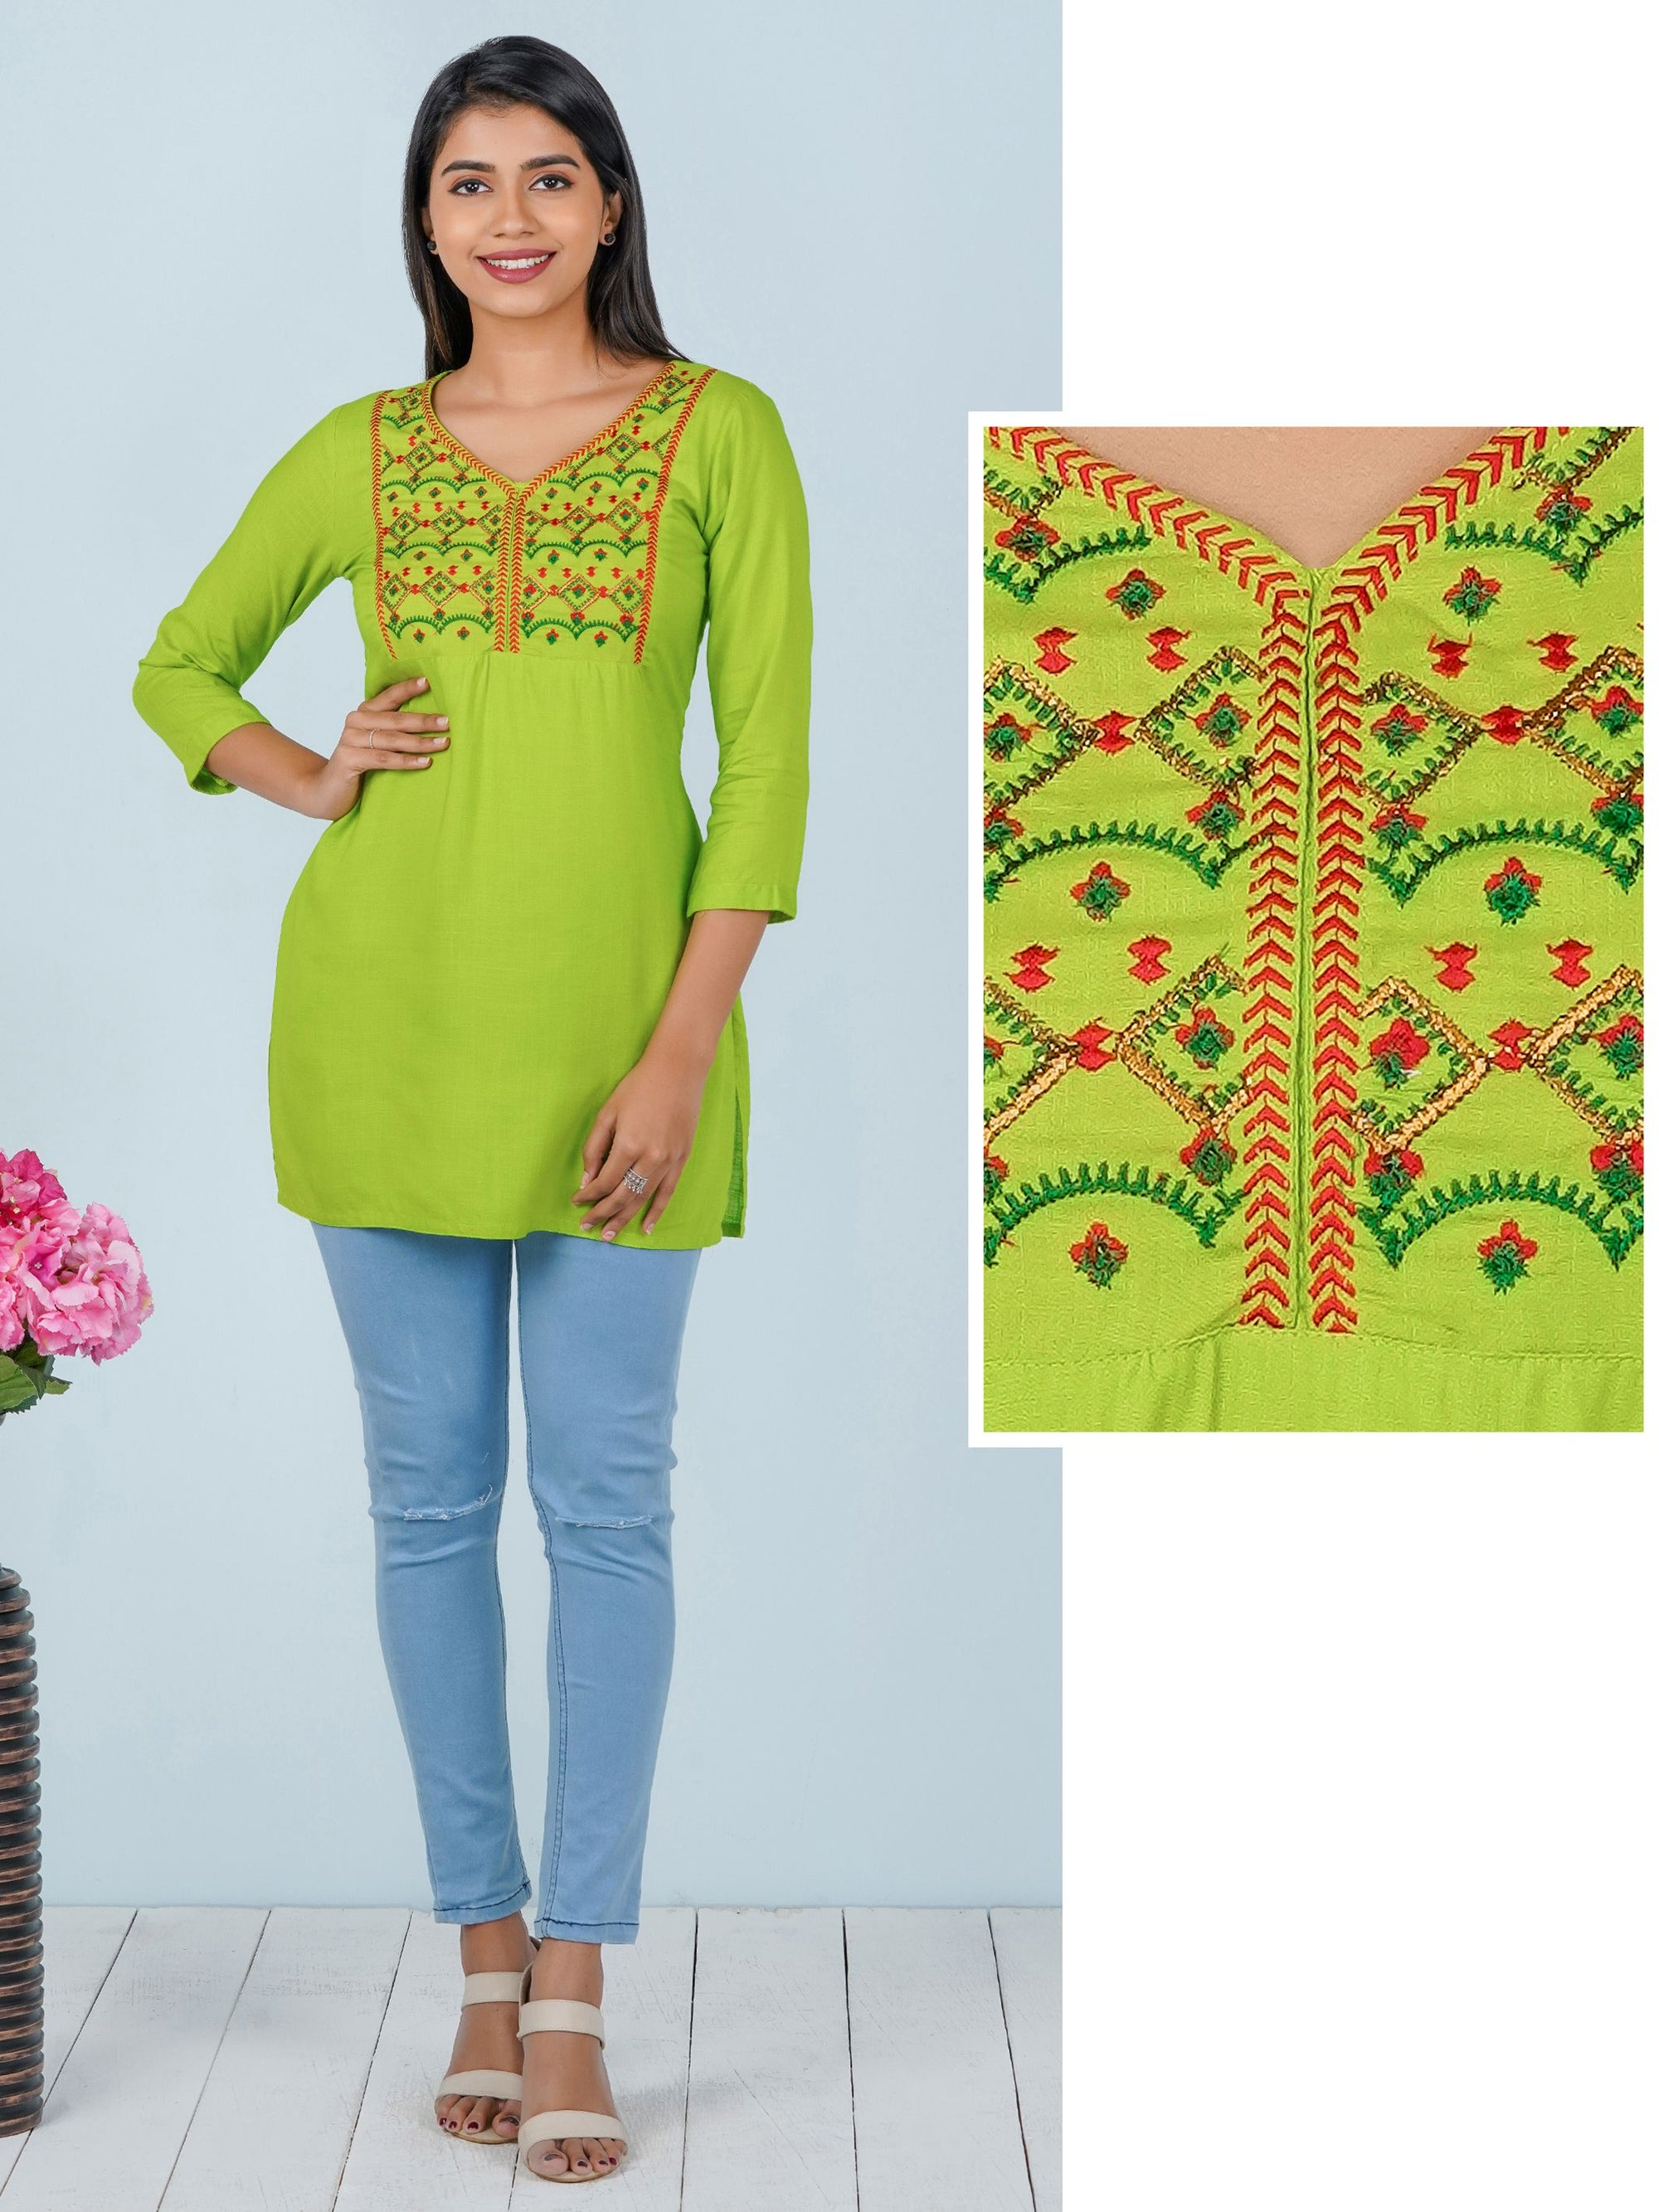 Chevron & Zari Embroidered Rayon Tunic – Chartreuse Green